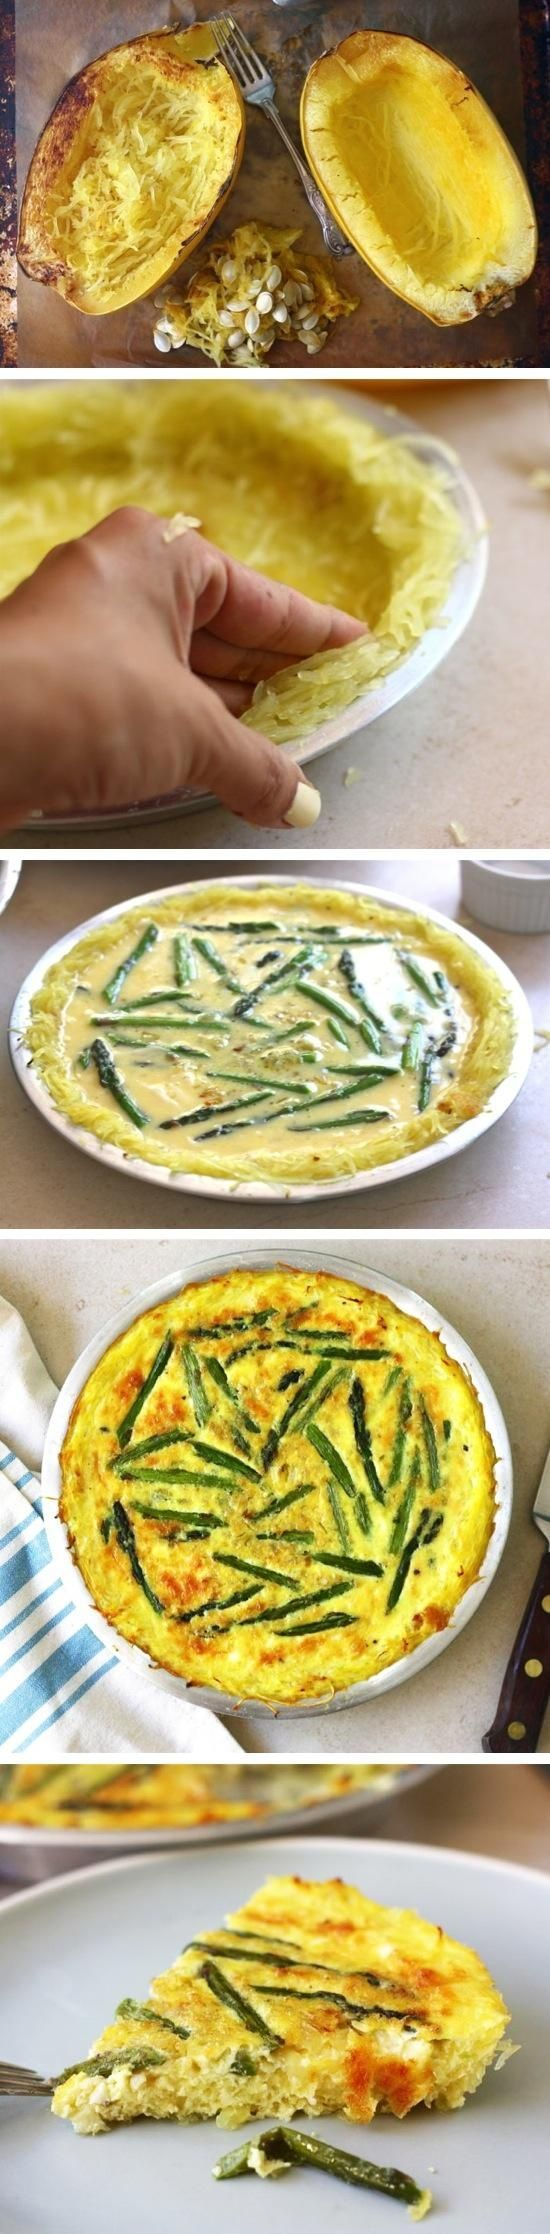 Take advantage of the Fall harvest with this recipe for squash crusted asparagus quiche! #Fall #harvest